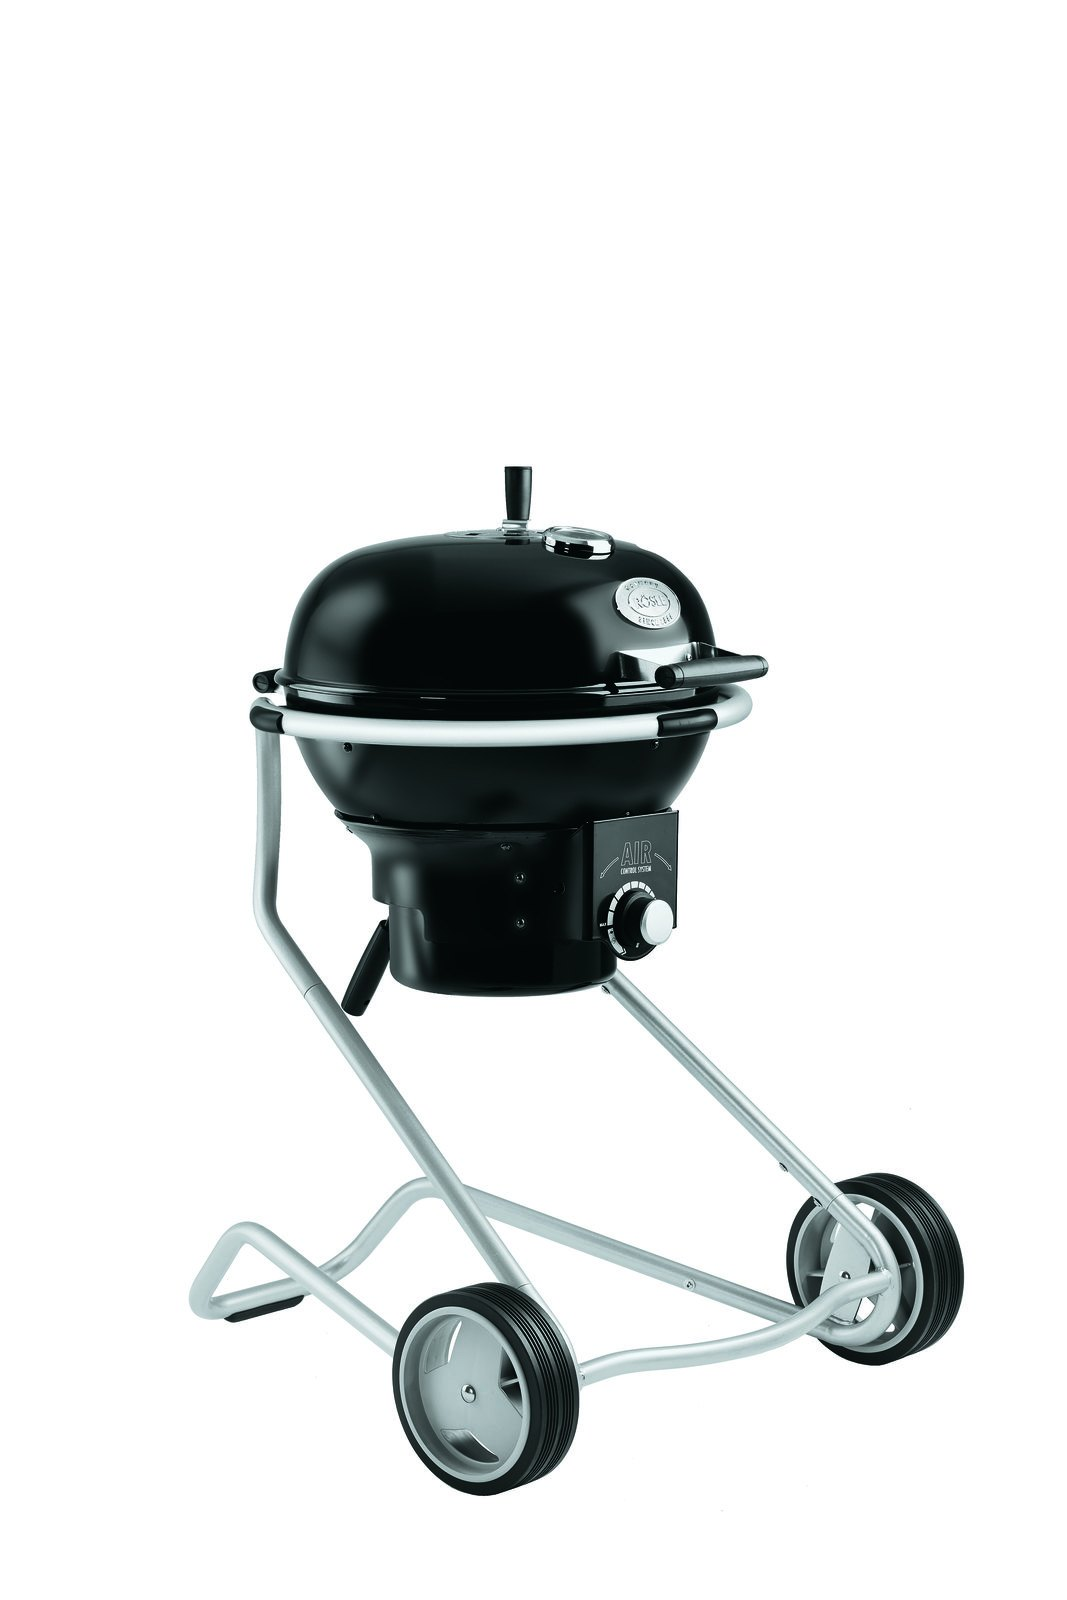 Hiiligrilli Kettle Grill No. 1 AIR F50 20in